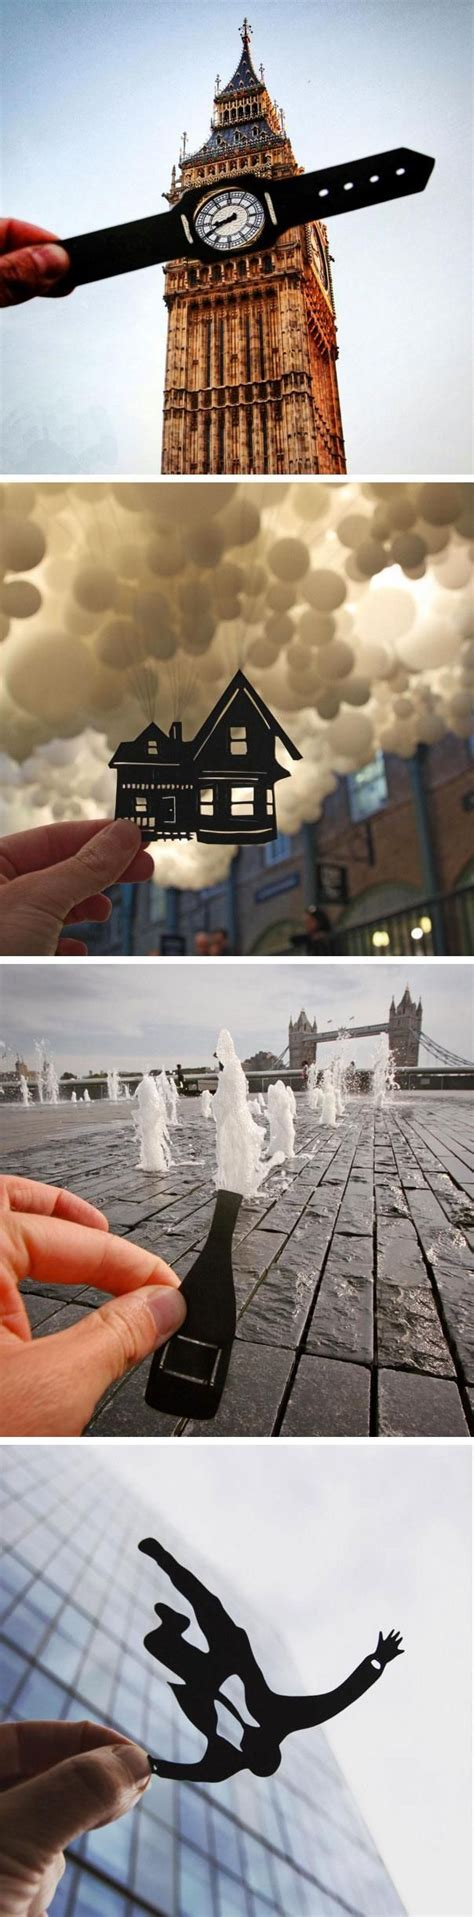 photography images  pinterest creative